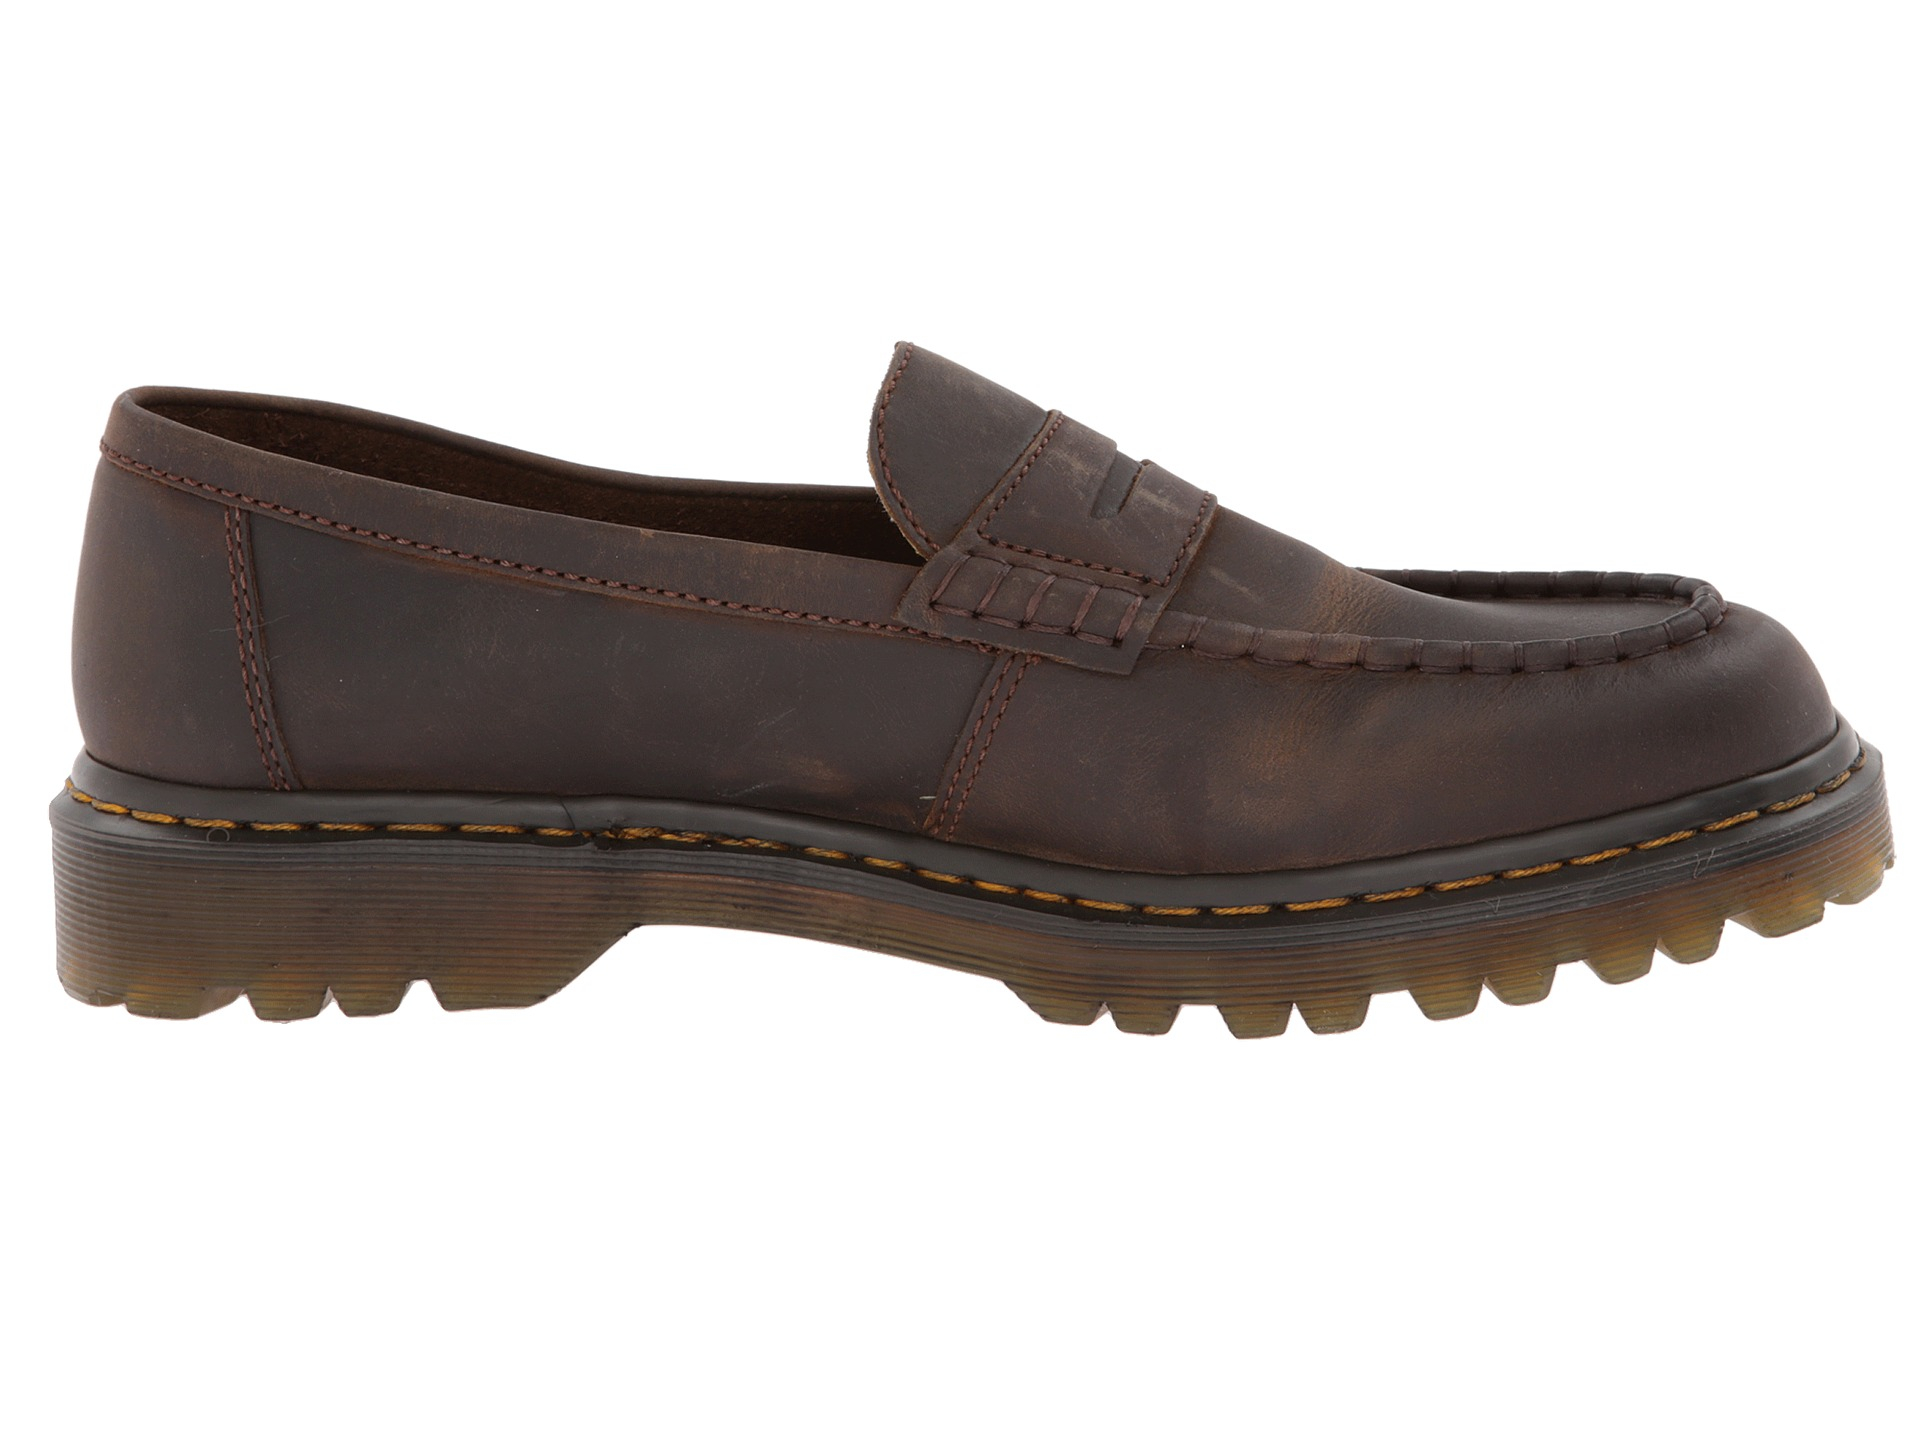 5aa6d4d3c4a Lyst - Dr. Martens Mabbott Penny Loafer in Brown for Men